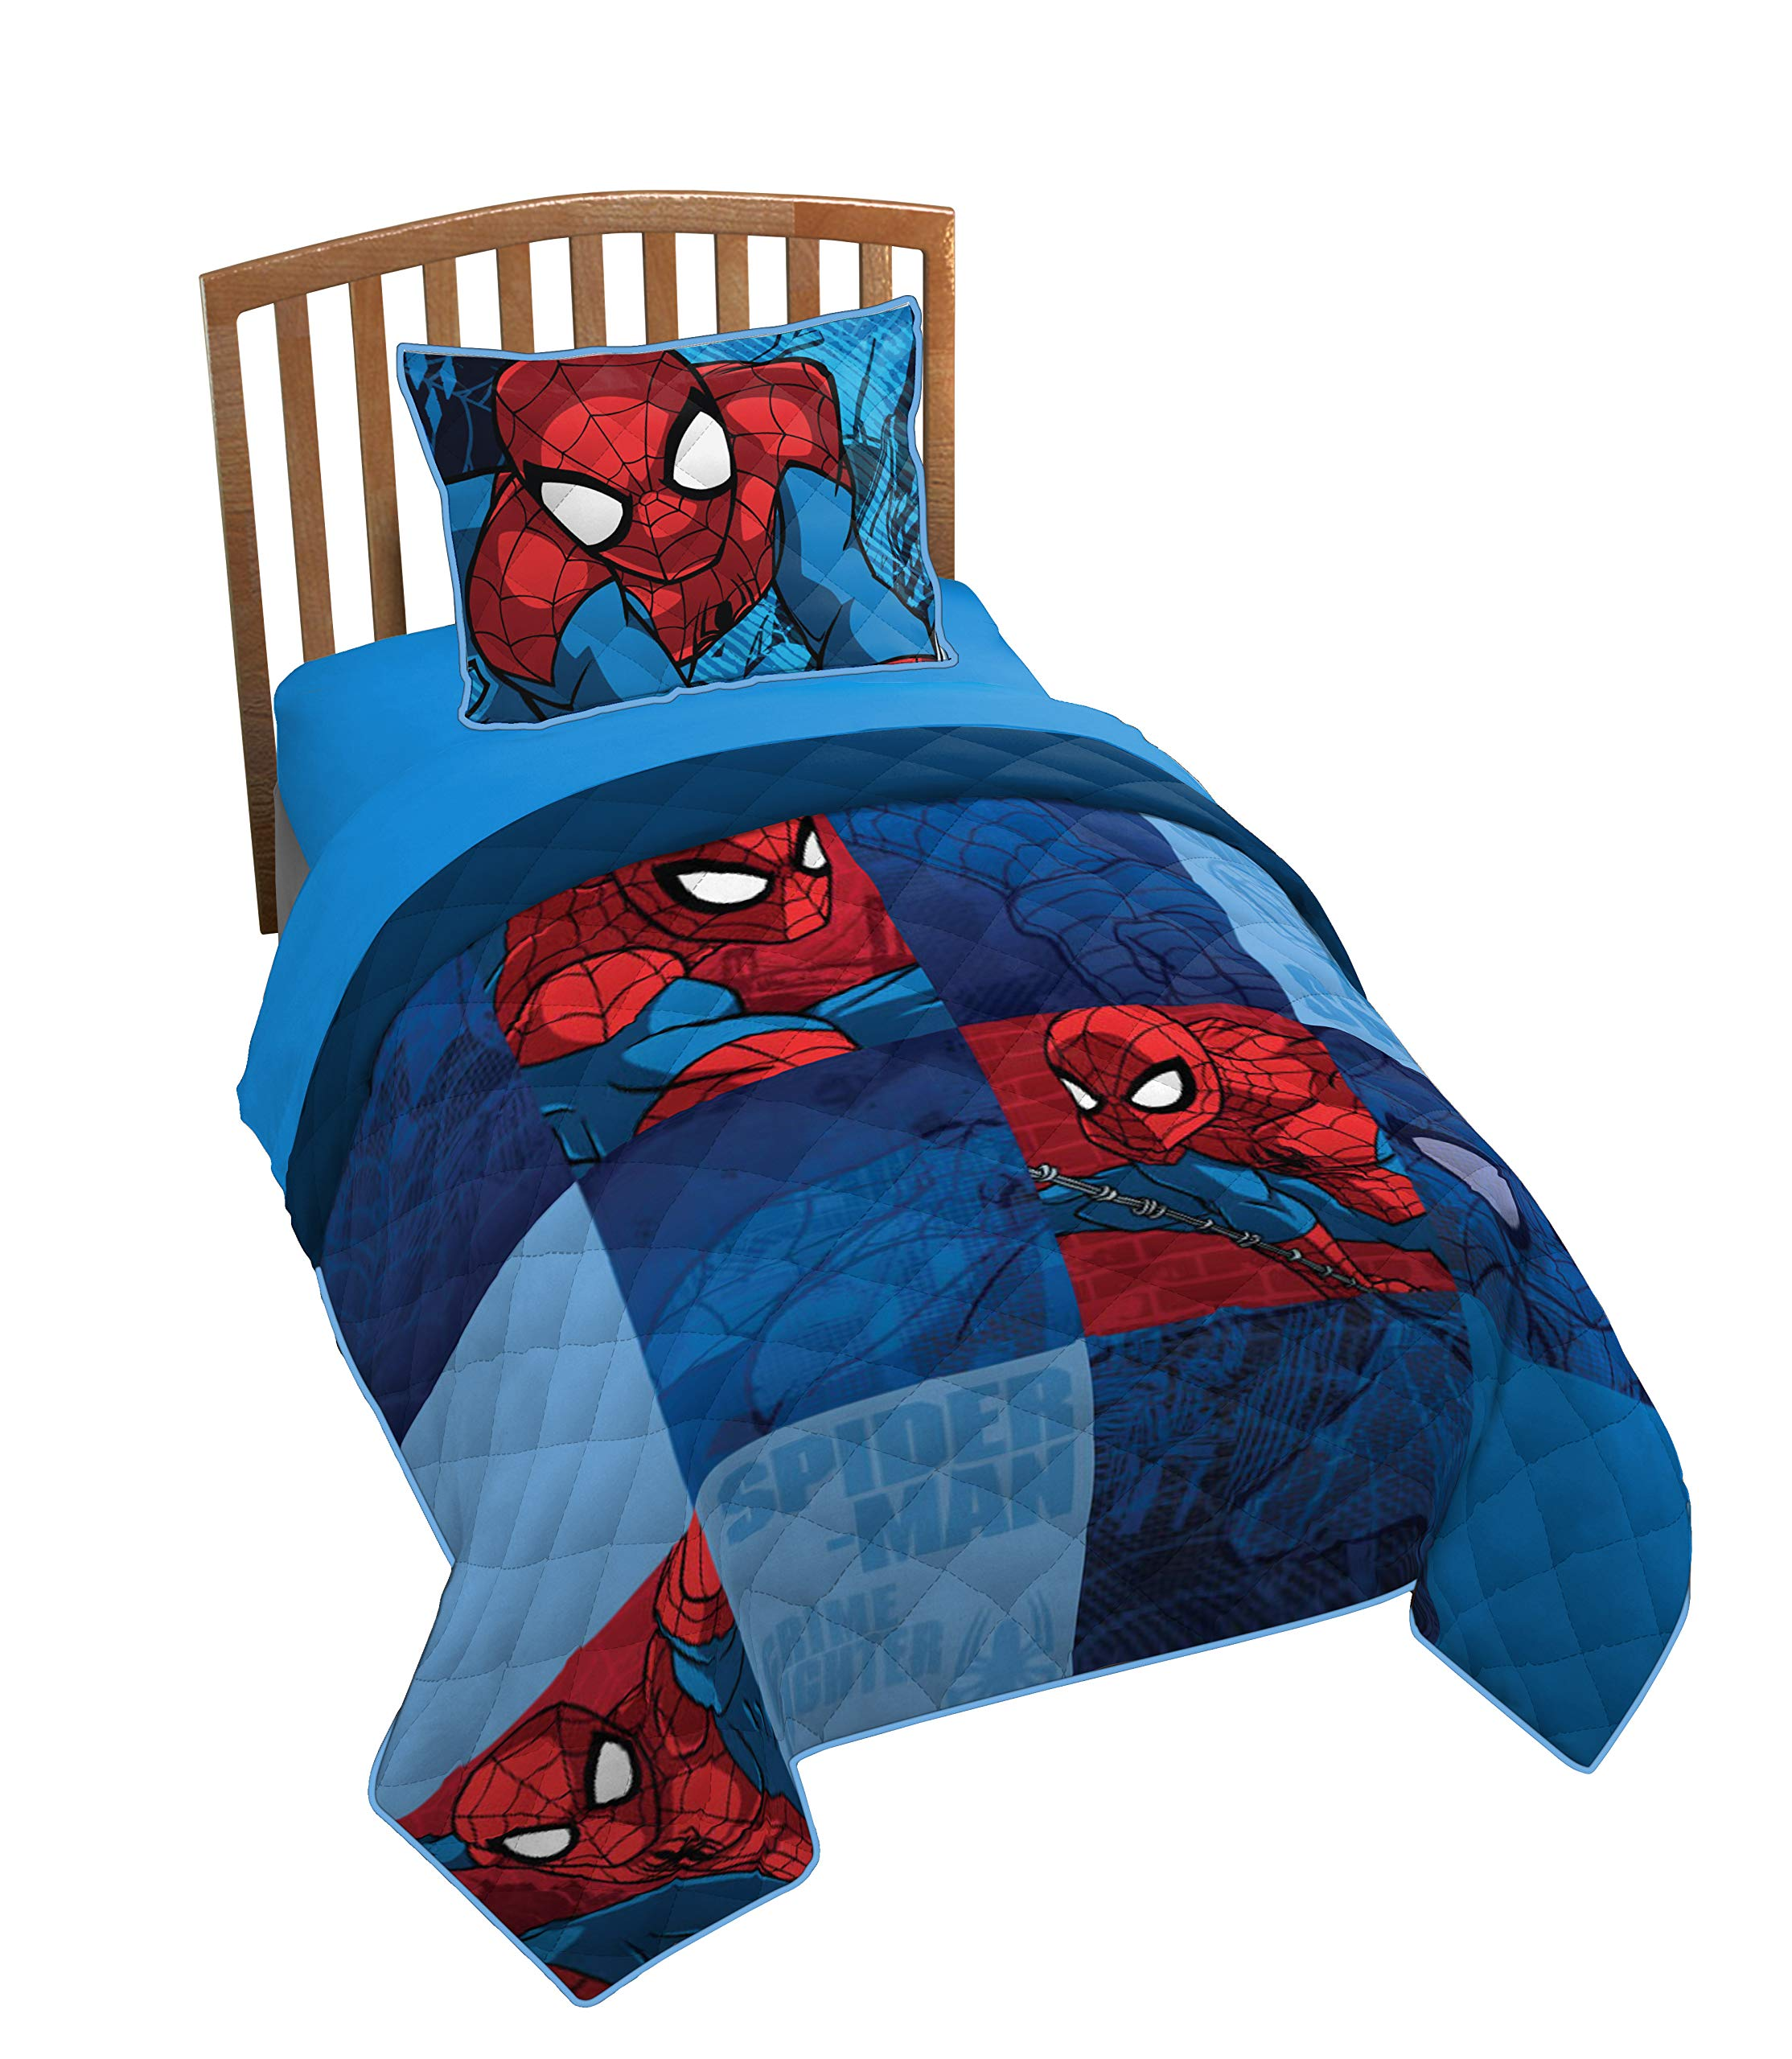 Jay Franco Marvel Spiderman Burst Twin/Full Quilt & Sham Set - Super Soft Kids Bedding Features Spiderman - Fade Resistant Polyester (Official Marvel Product) by Jay Franco